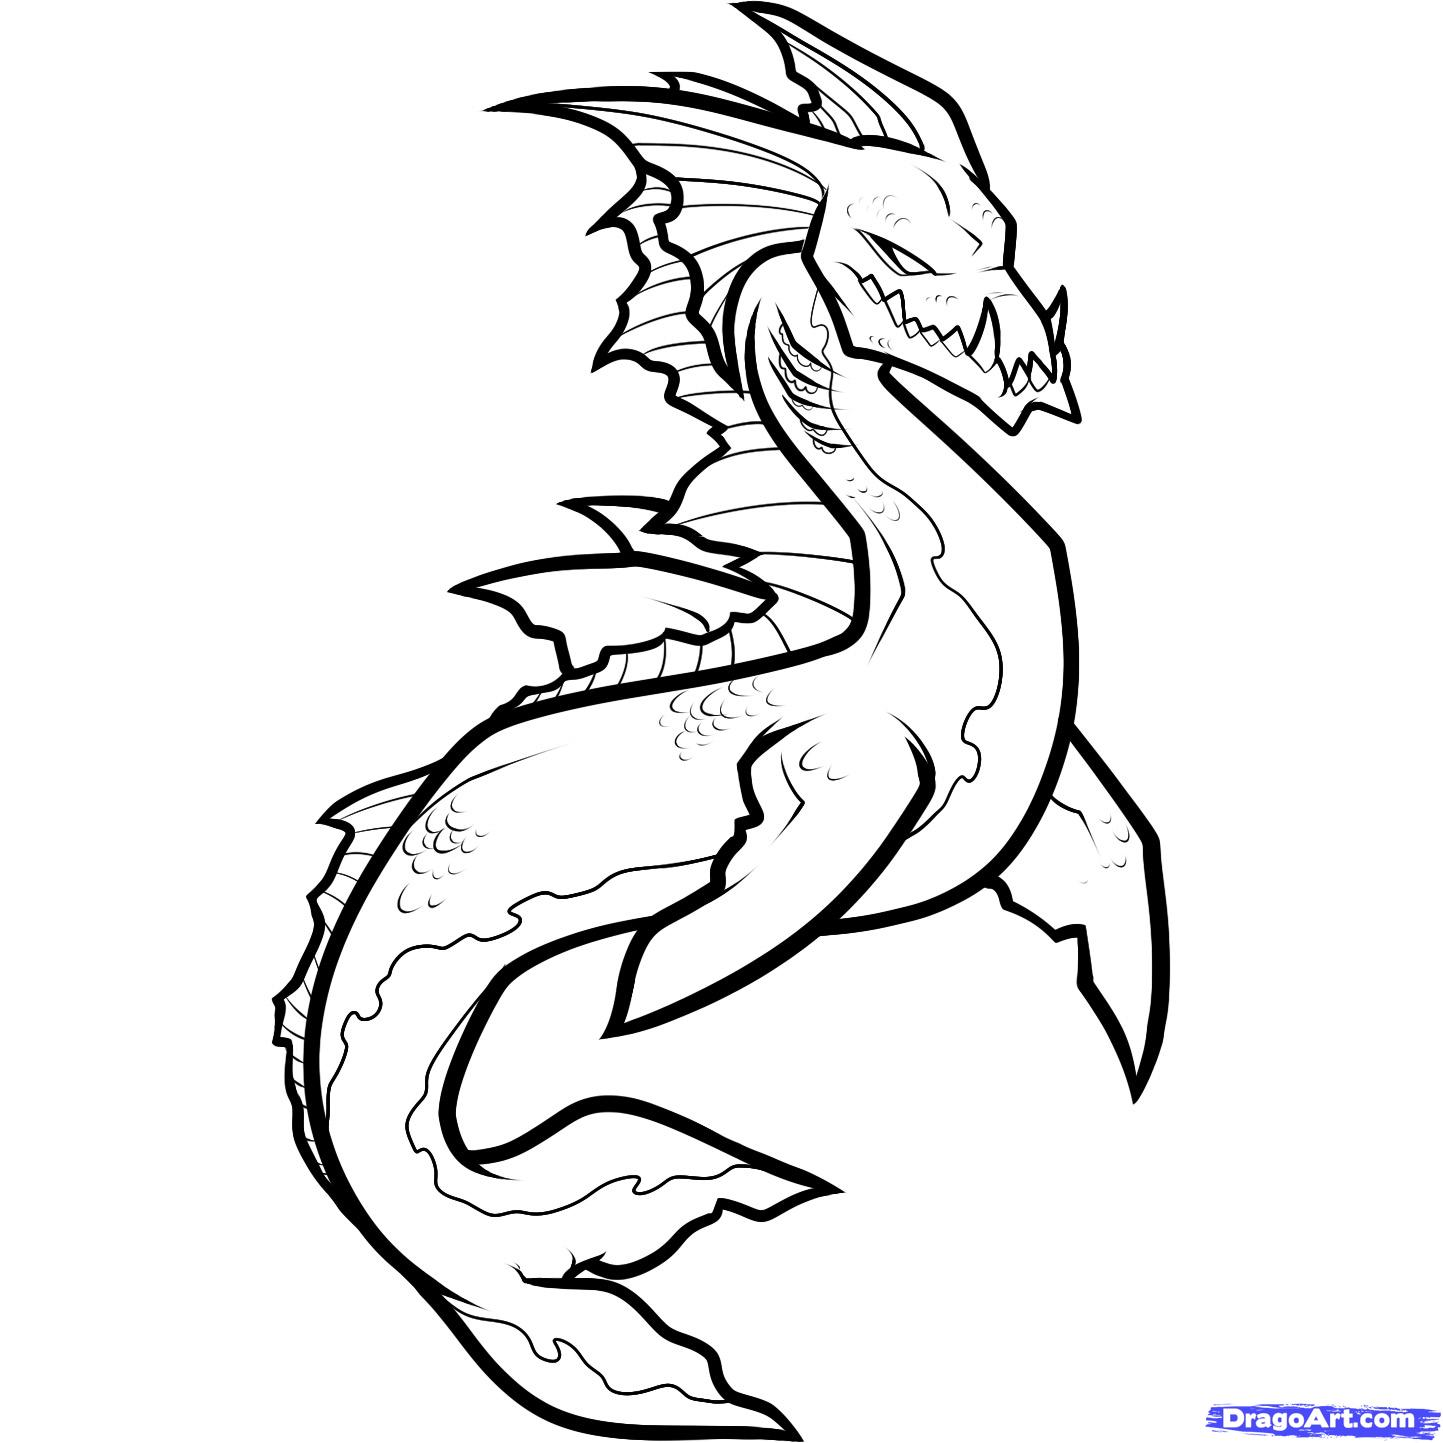 1443x1443 Pictures Sea Monster Coloring Pages On To Print With New